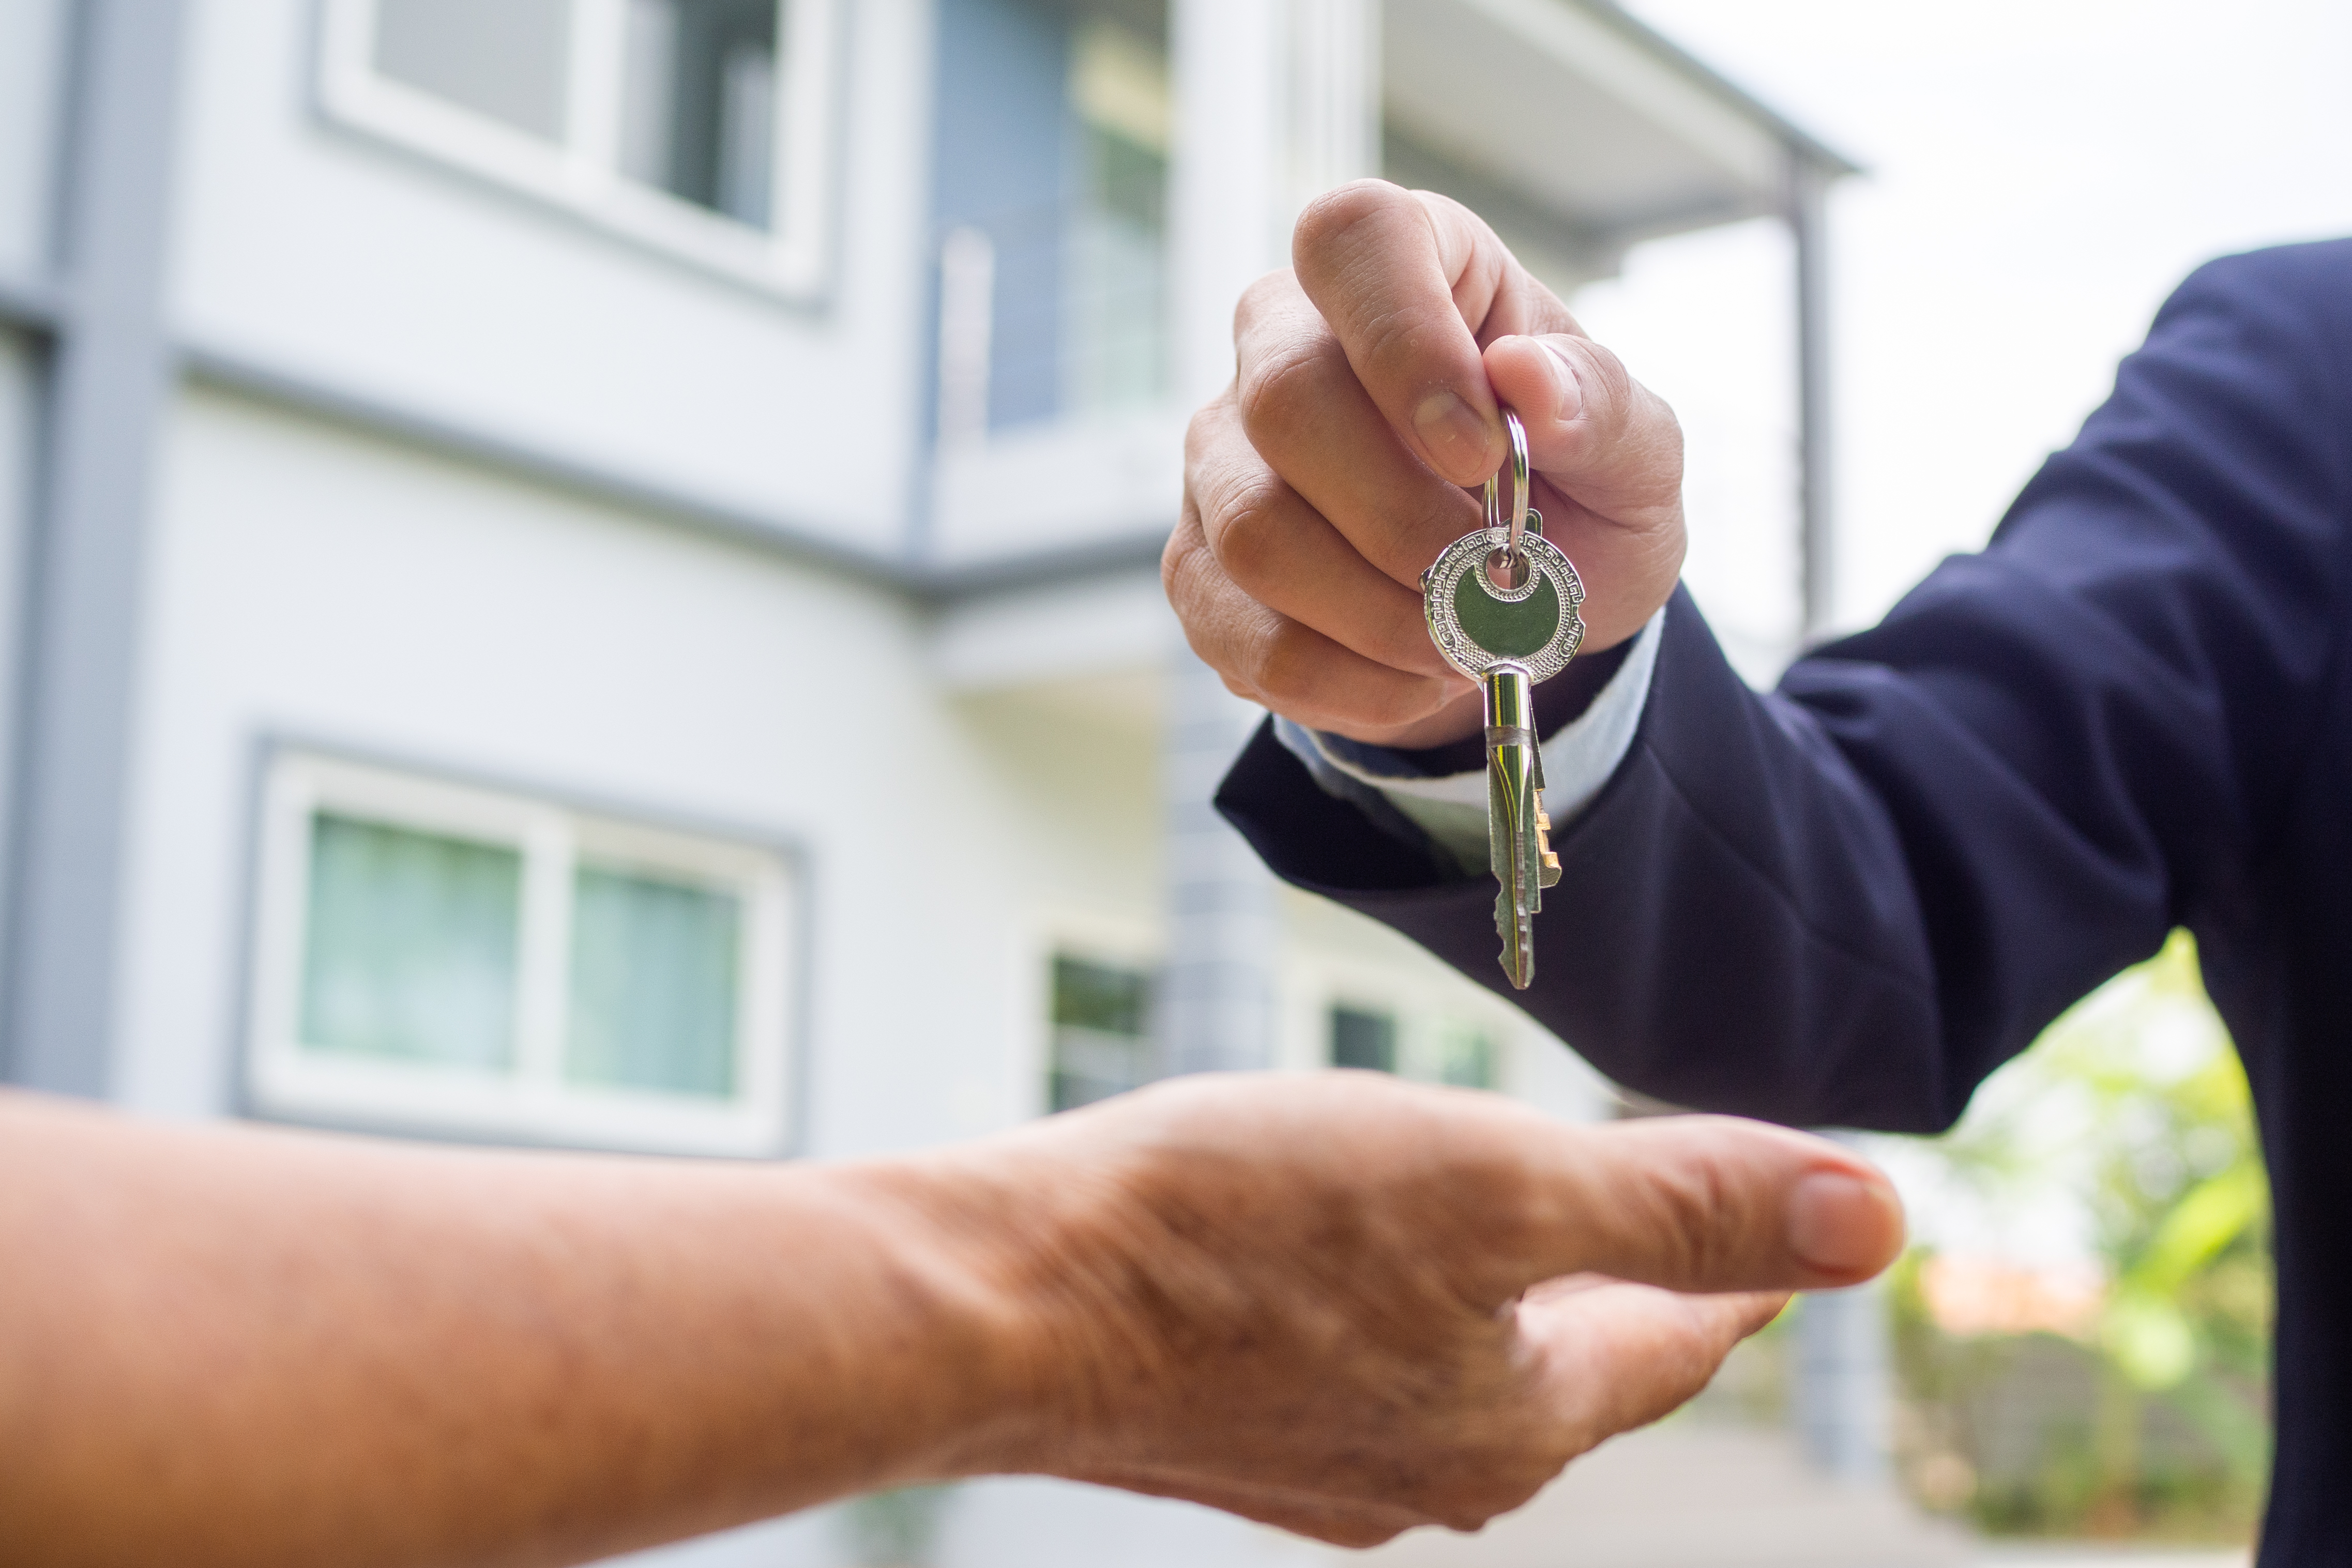 Security Systems, Smoke Detectors & Carbon Monoxide Alarms: Your Duties as a Landlord